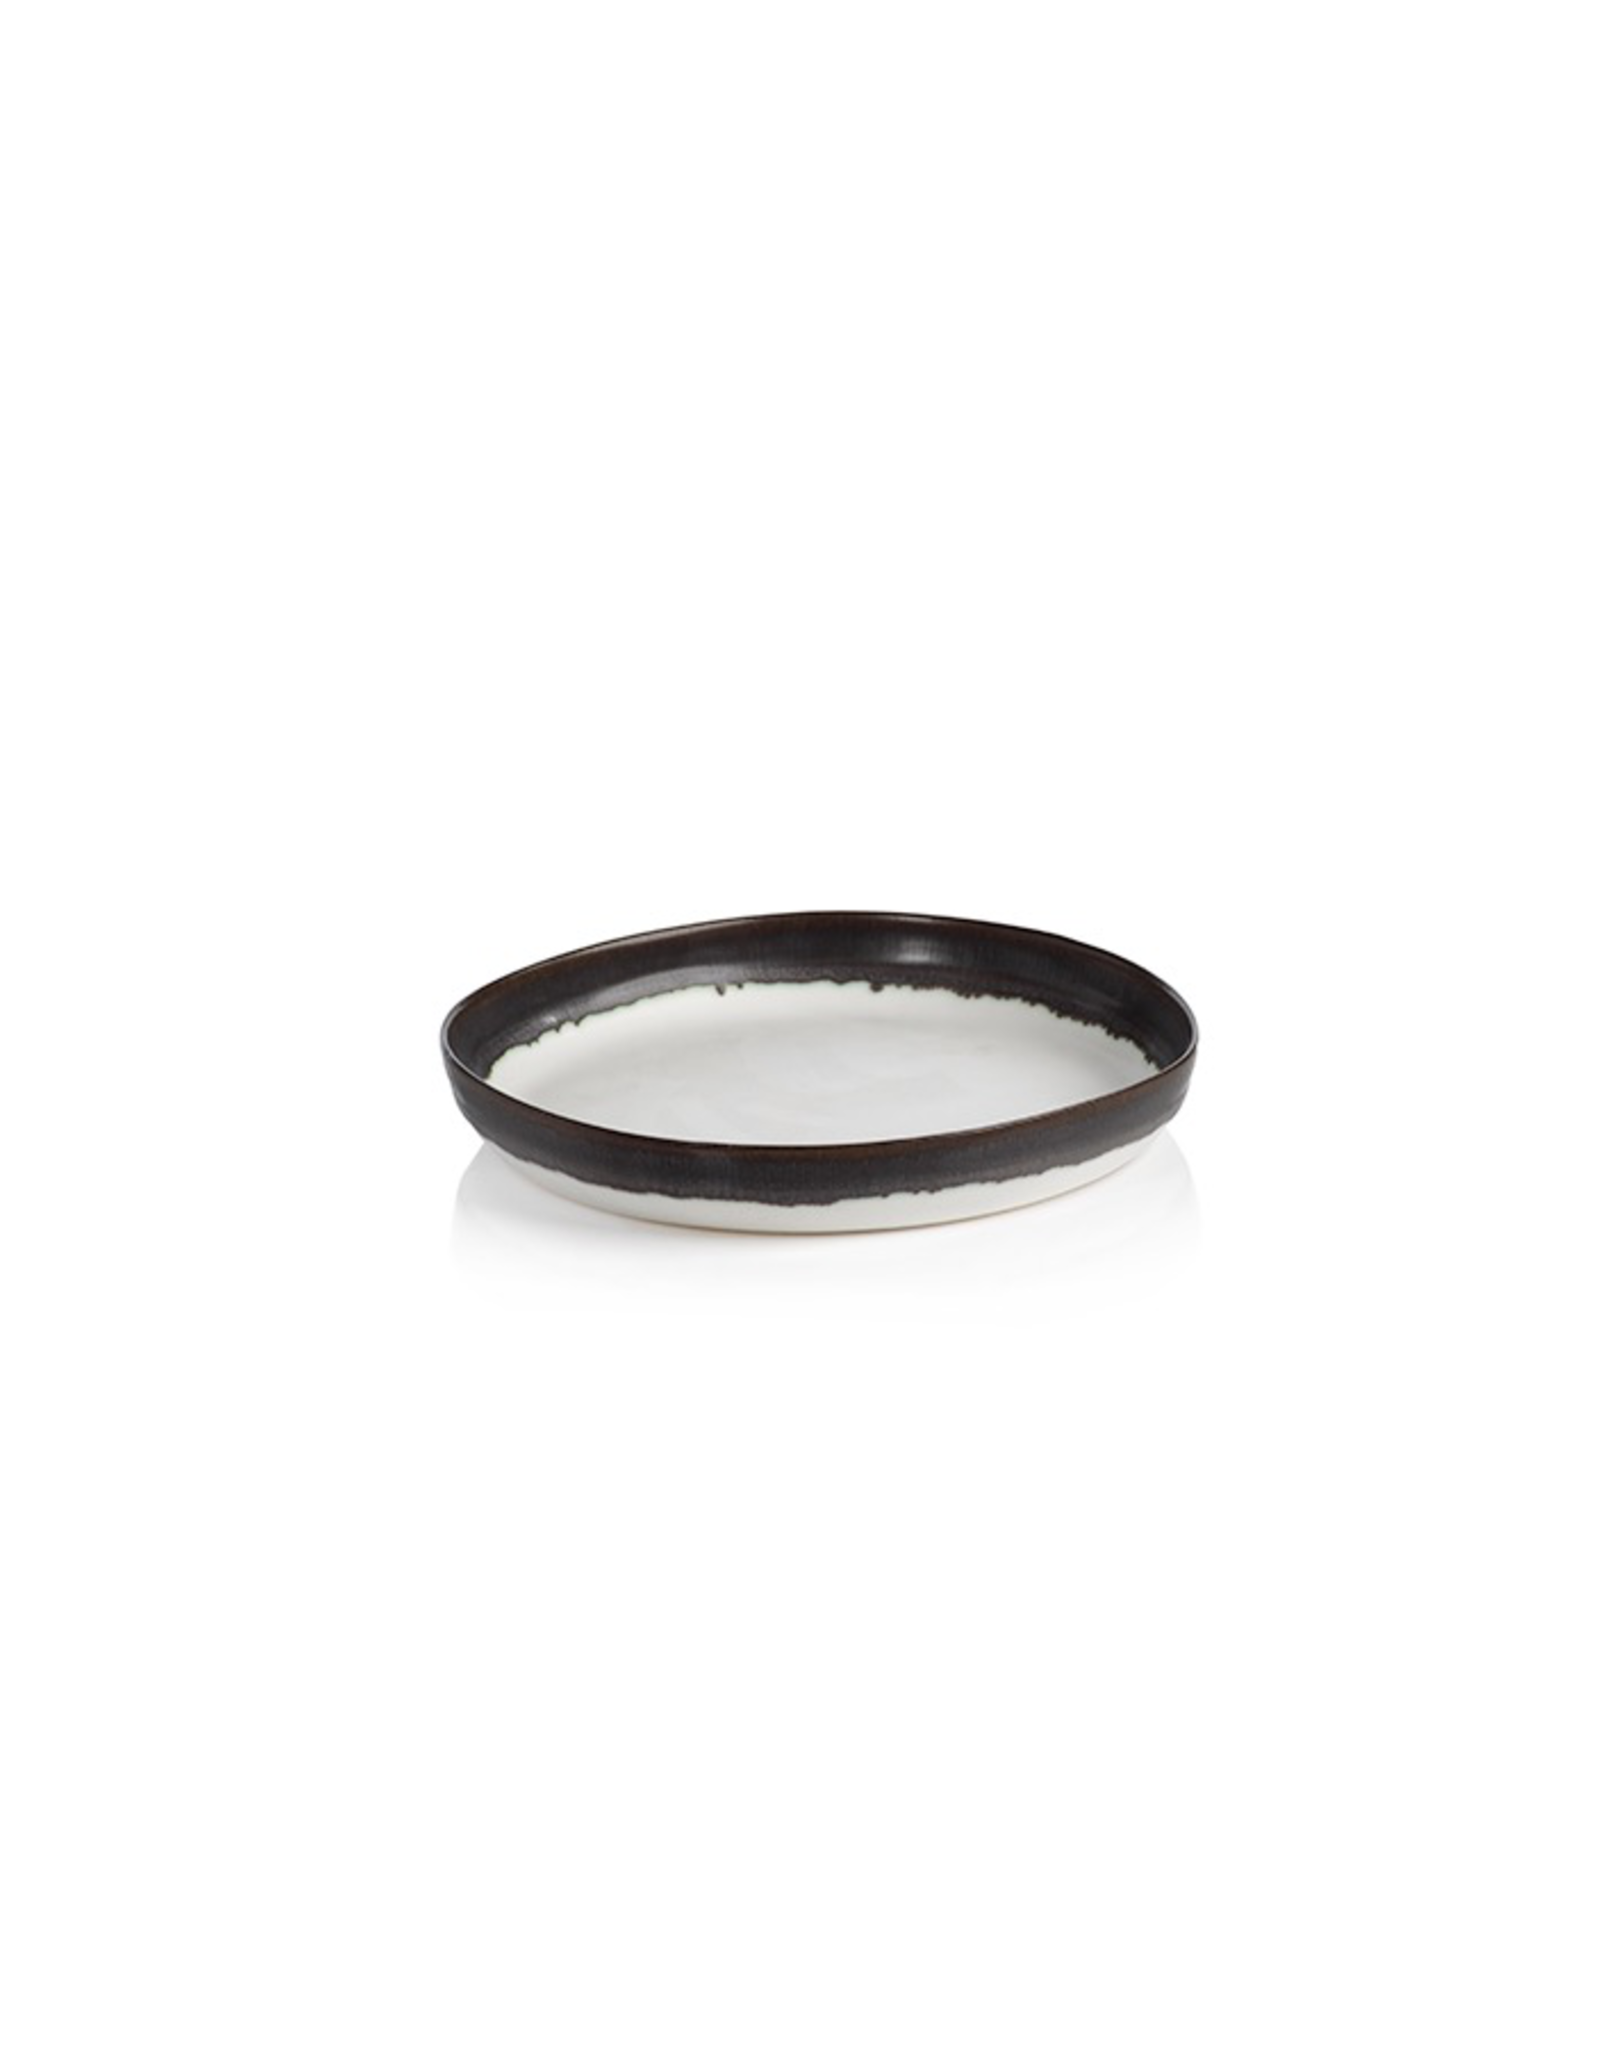 Shallow Bowl, White with Black Rim, Ceramic, D 6.75""